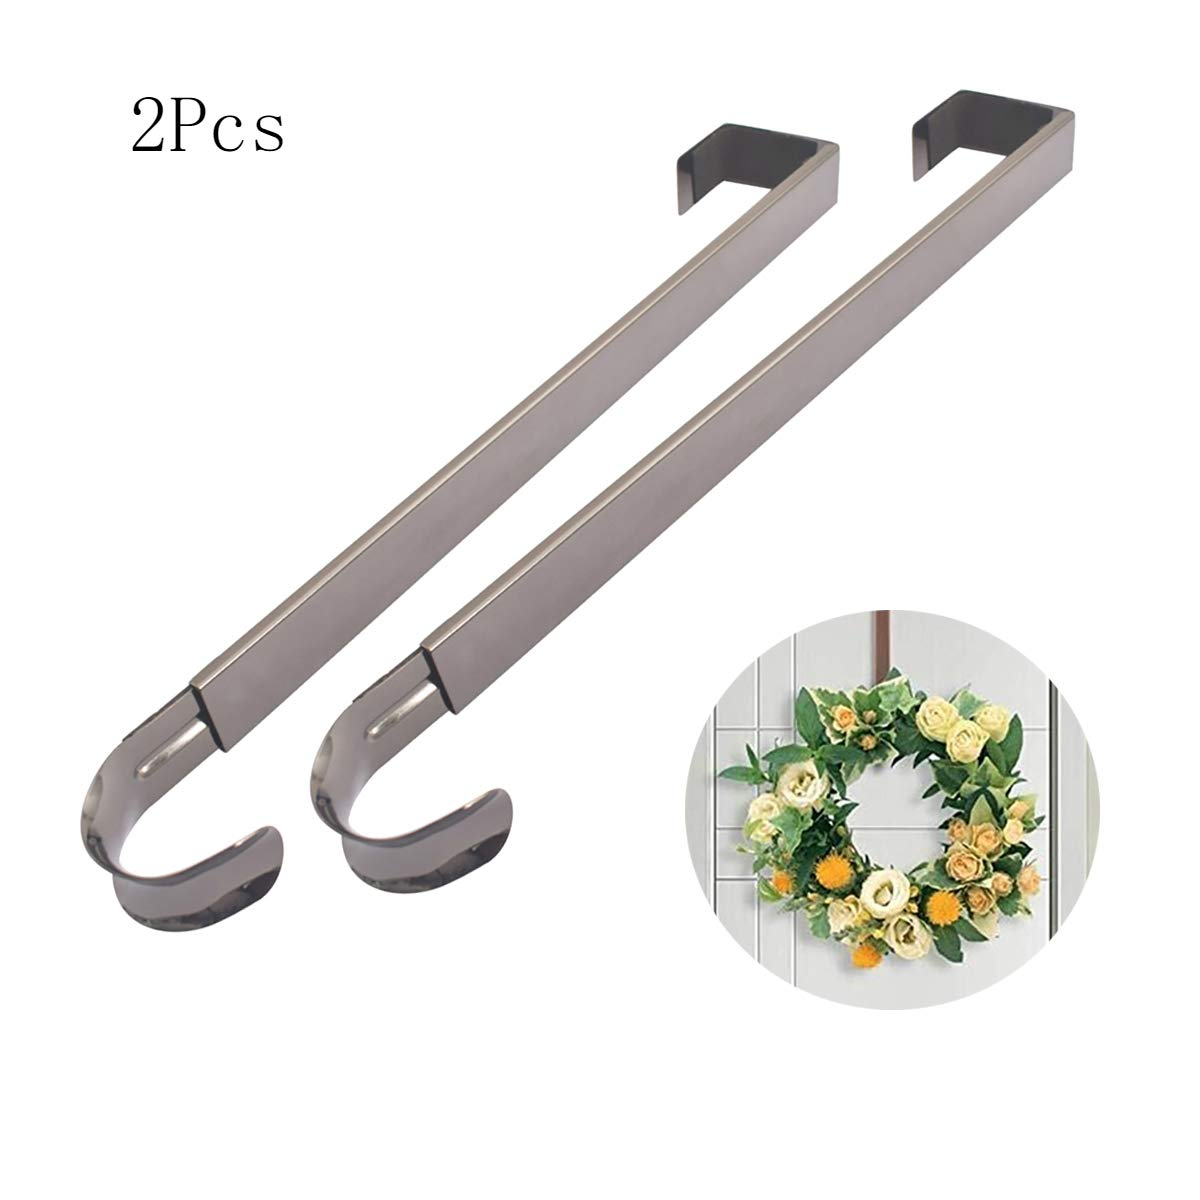 Pannow Telescopic Wreath Hook, Adjustable Length 15.7-25 Inch Metal Hook Universal Door Holder Wreath Hook Hanger for Front Door Christmas Wreath, Coats, Bathroom, Bedroom Decorations by Pannow